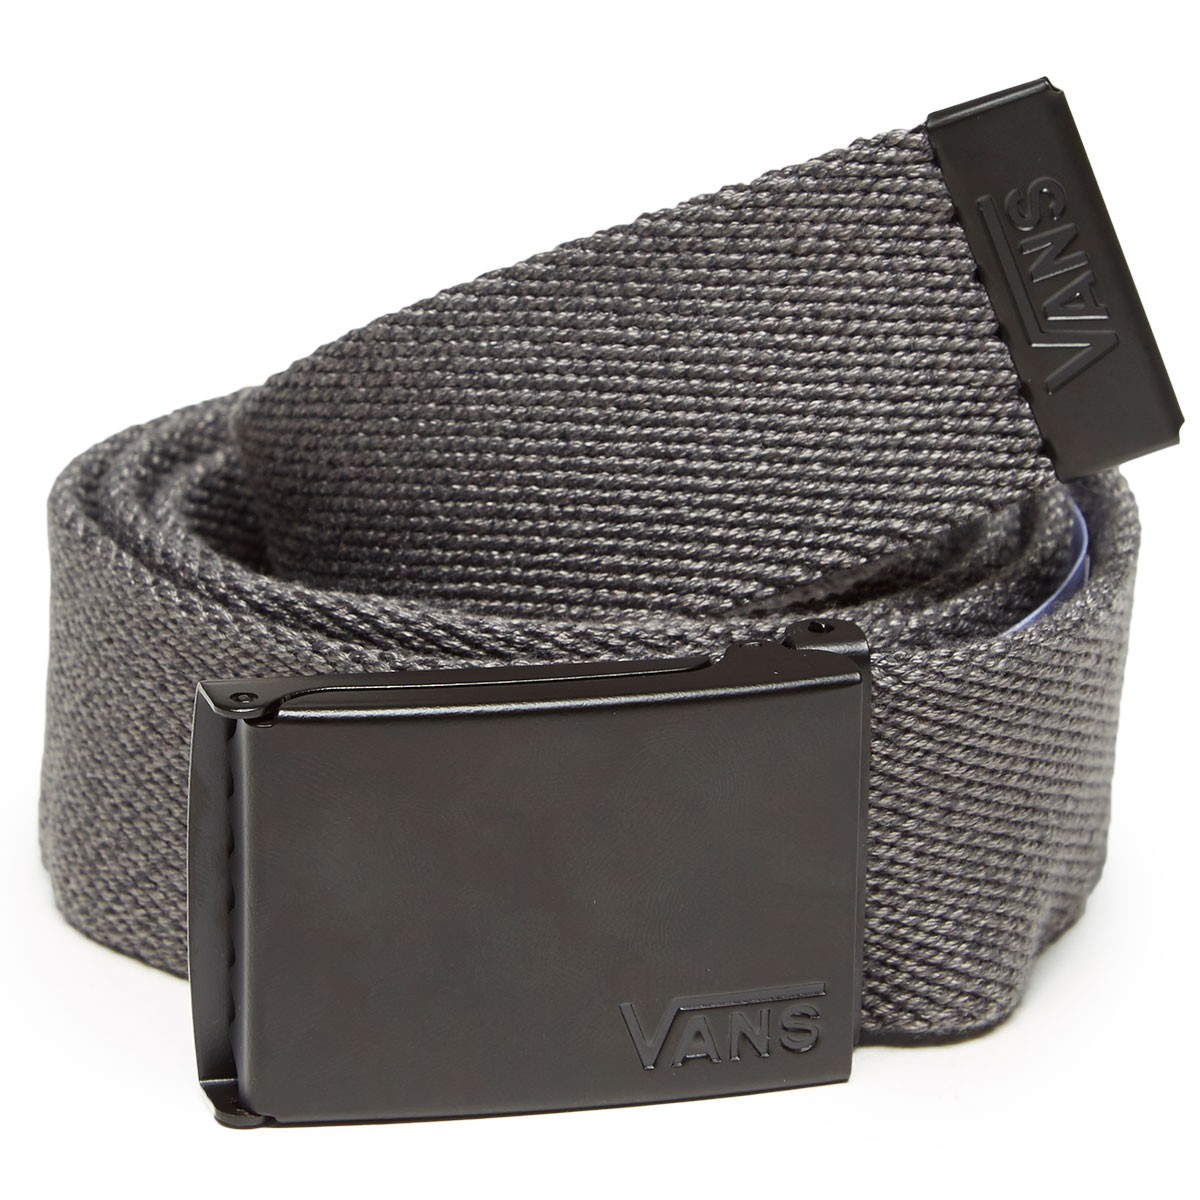 a9622c4962fe98 Vans Deppster II Web Belt - Charcoal Heather - Vans - Belts - Accessories